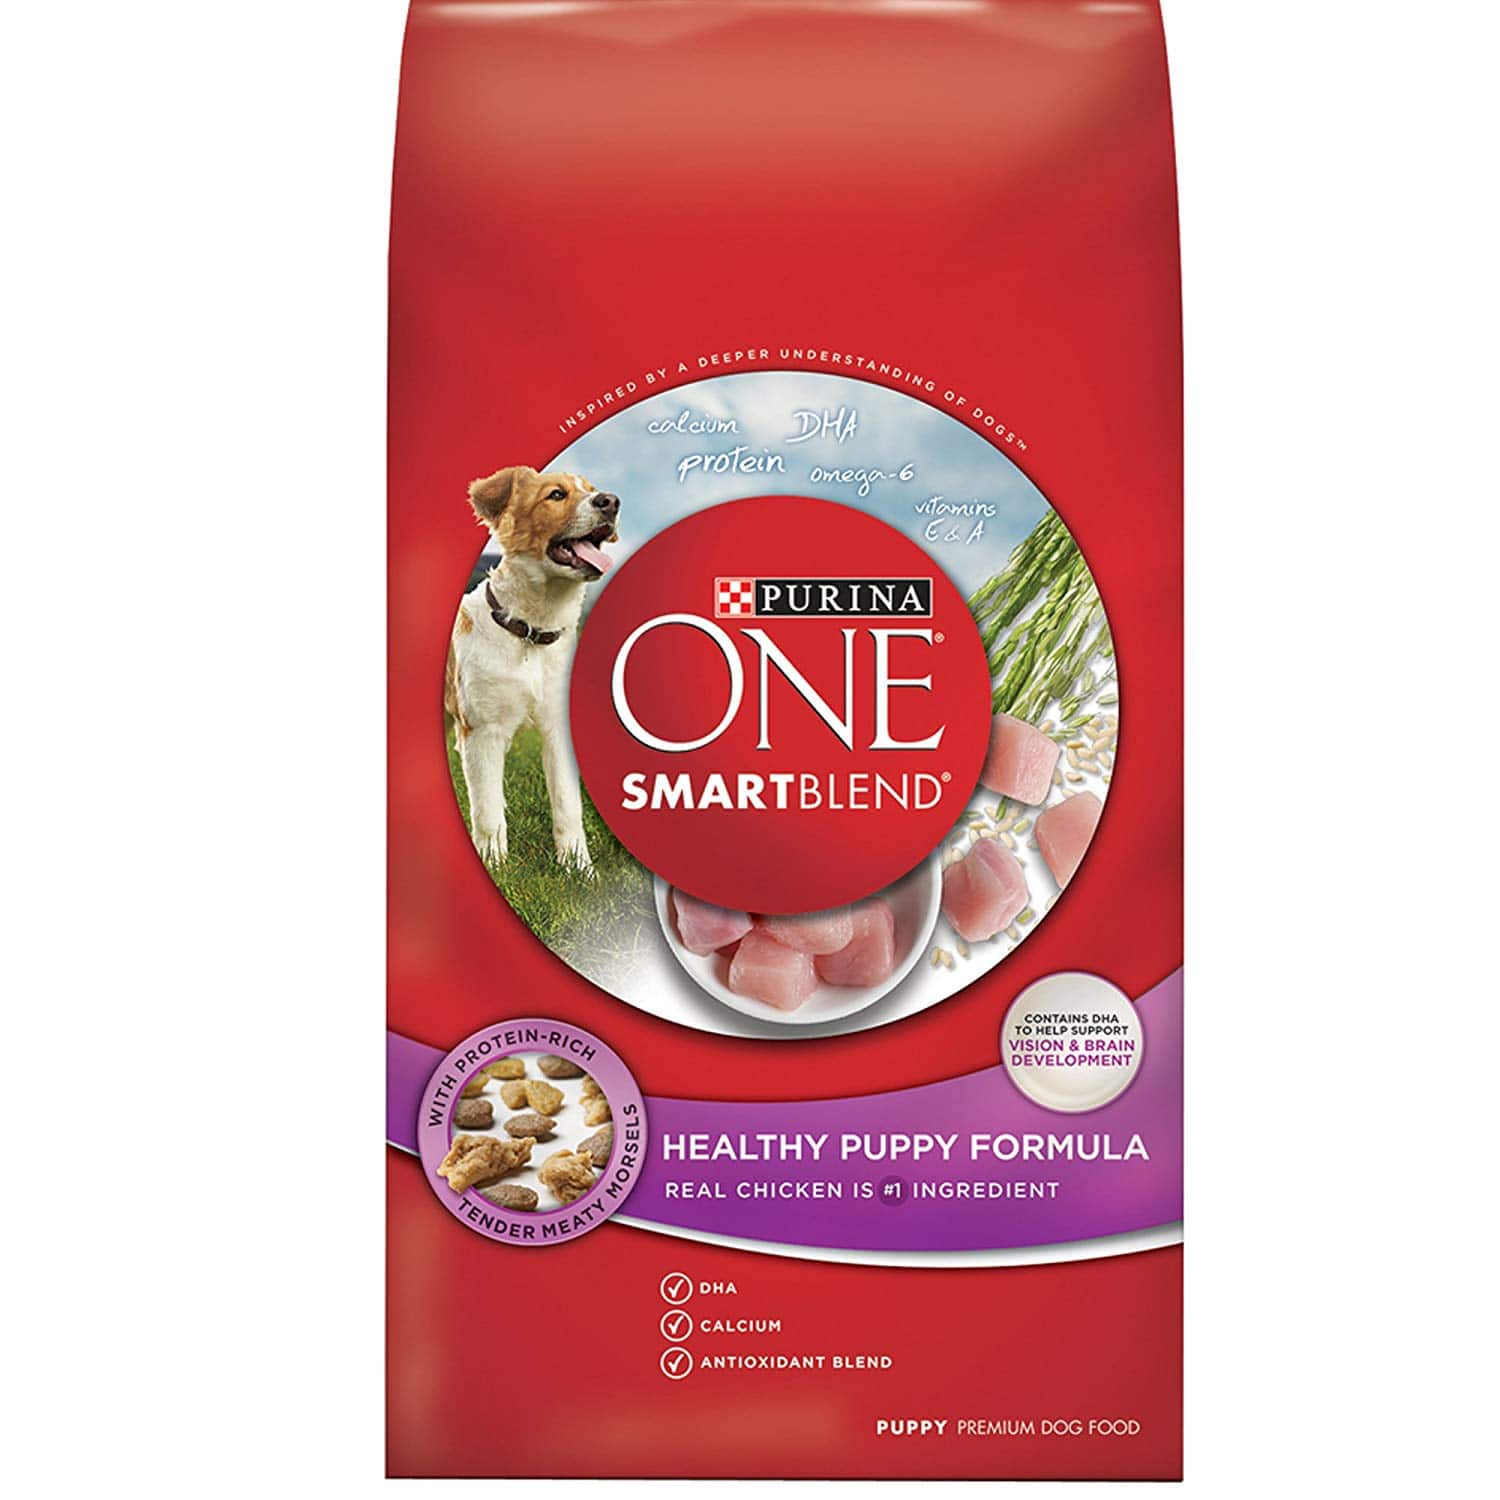 Purina ONE SmartBlend Natural Puppy Dog Food 16.5lbs $12.34 with s/s